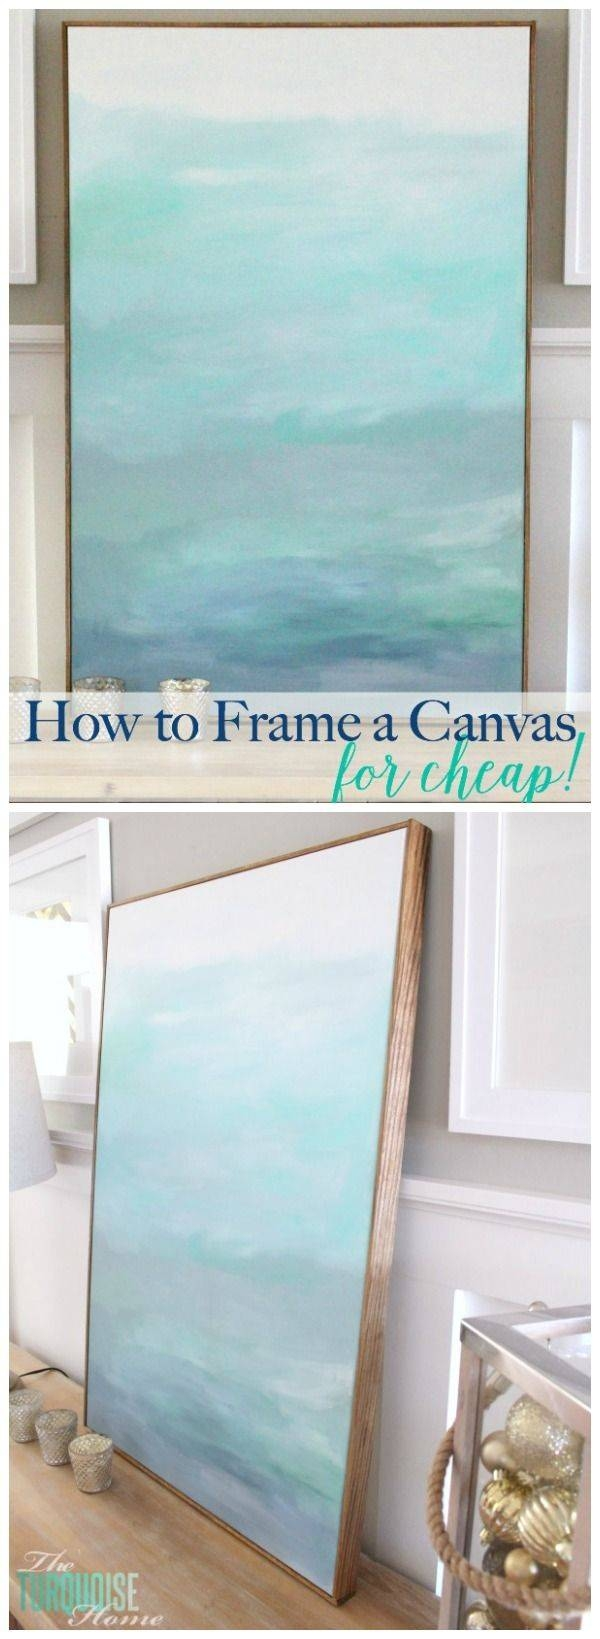 No Way! This Is Such An Easy (And Cheap!) Way Frame A Canvas (View 16 of 20)